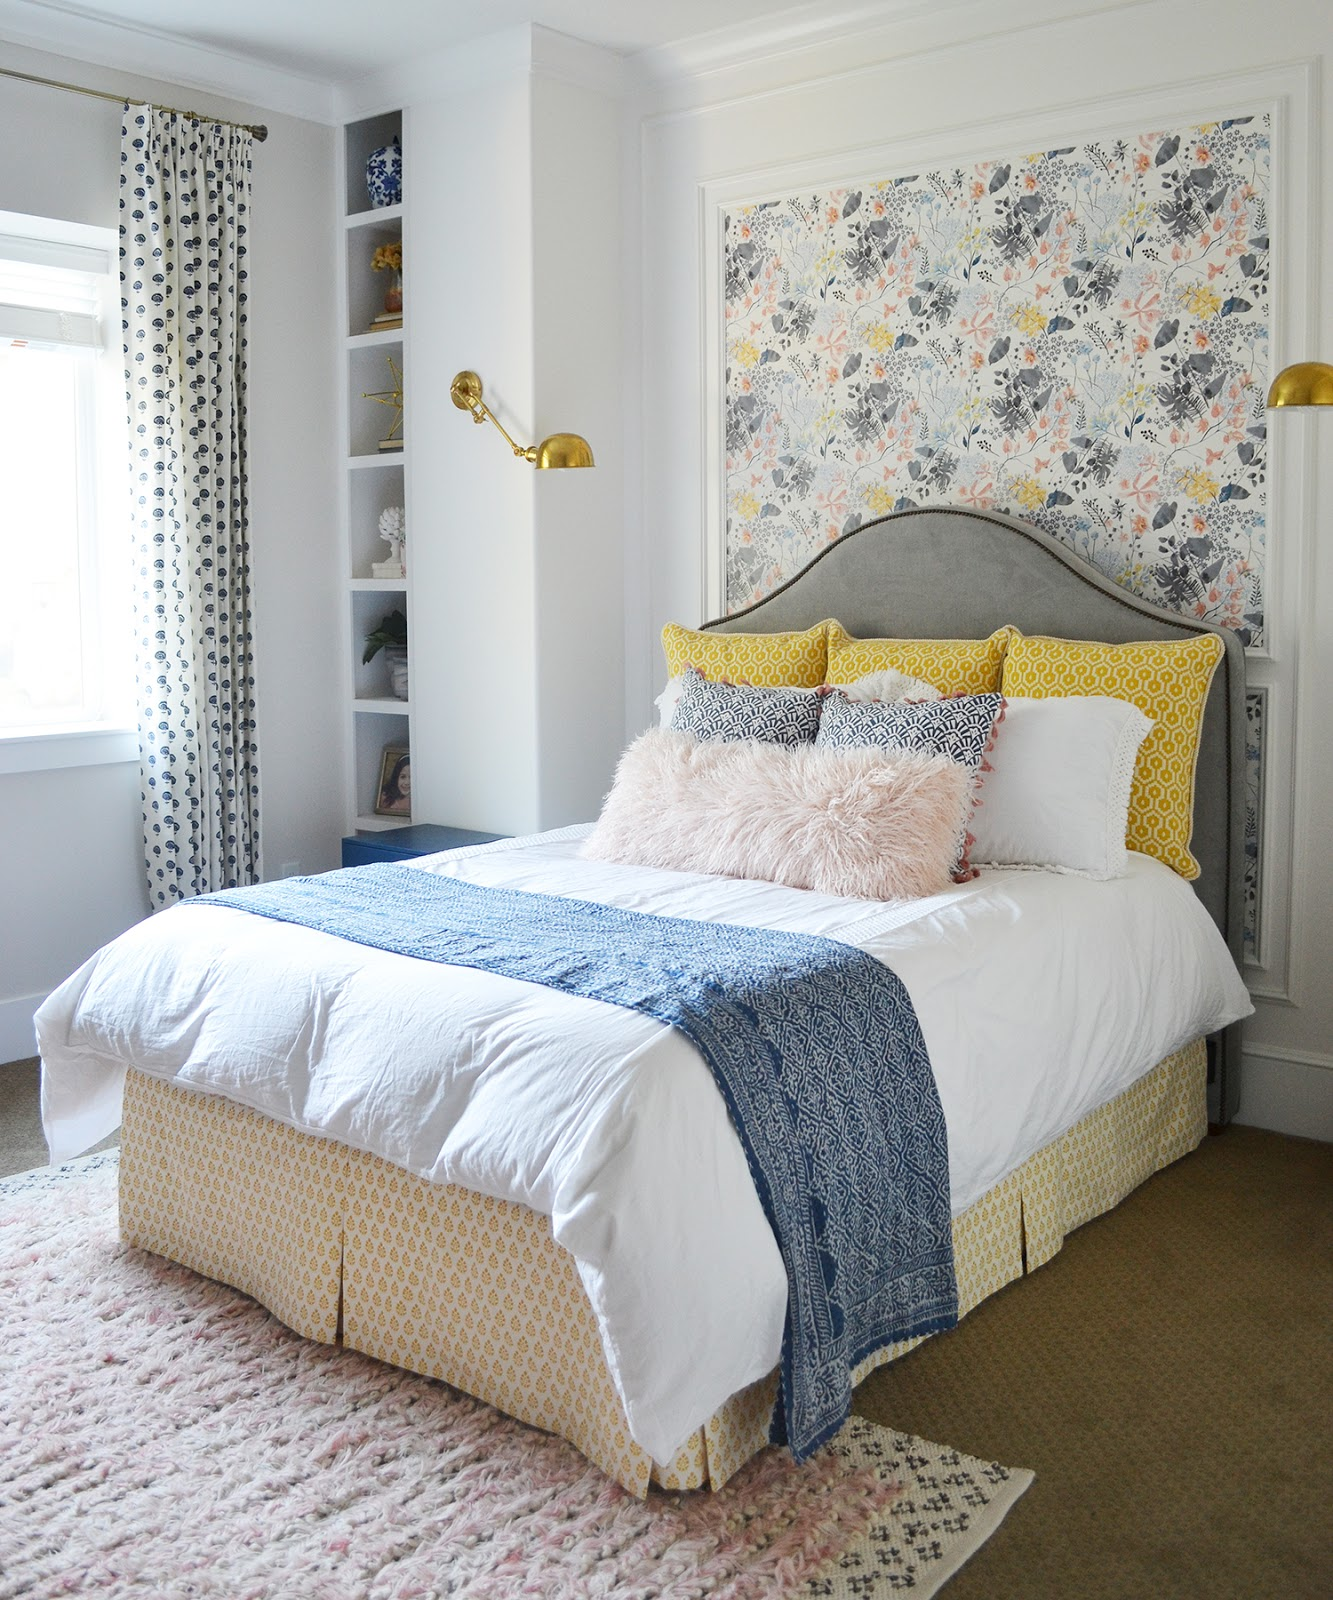 My Daughter's Bedroom Makeover Reveal